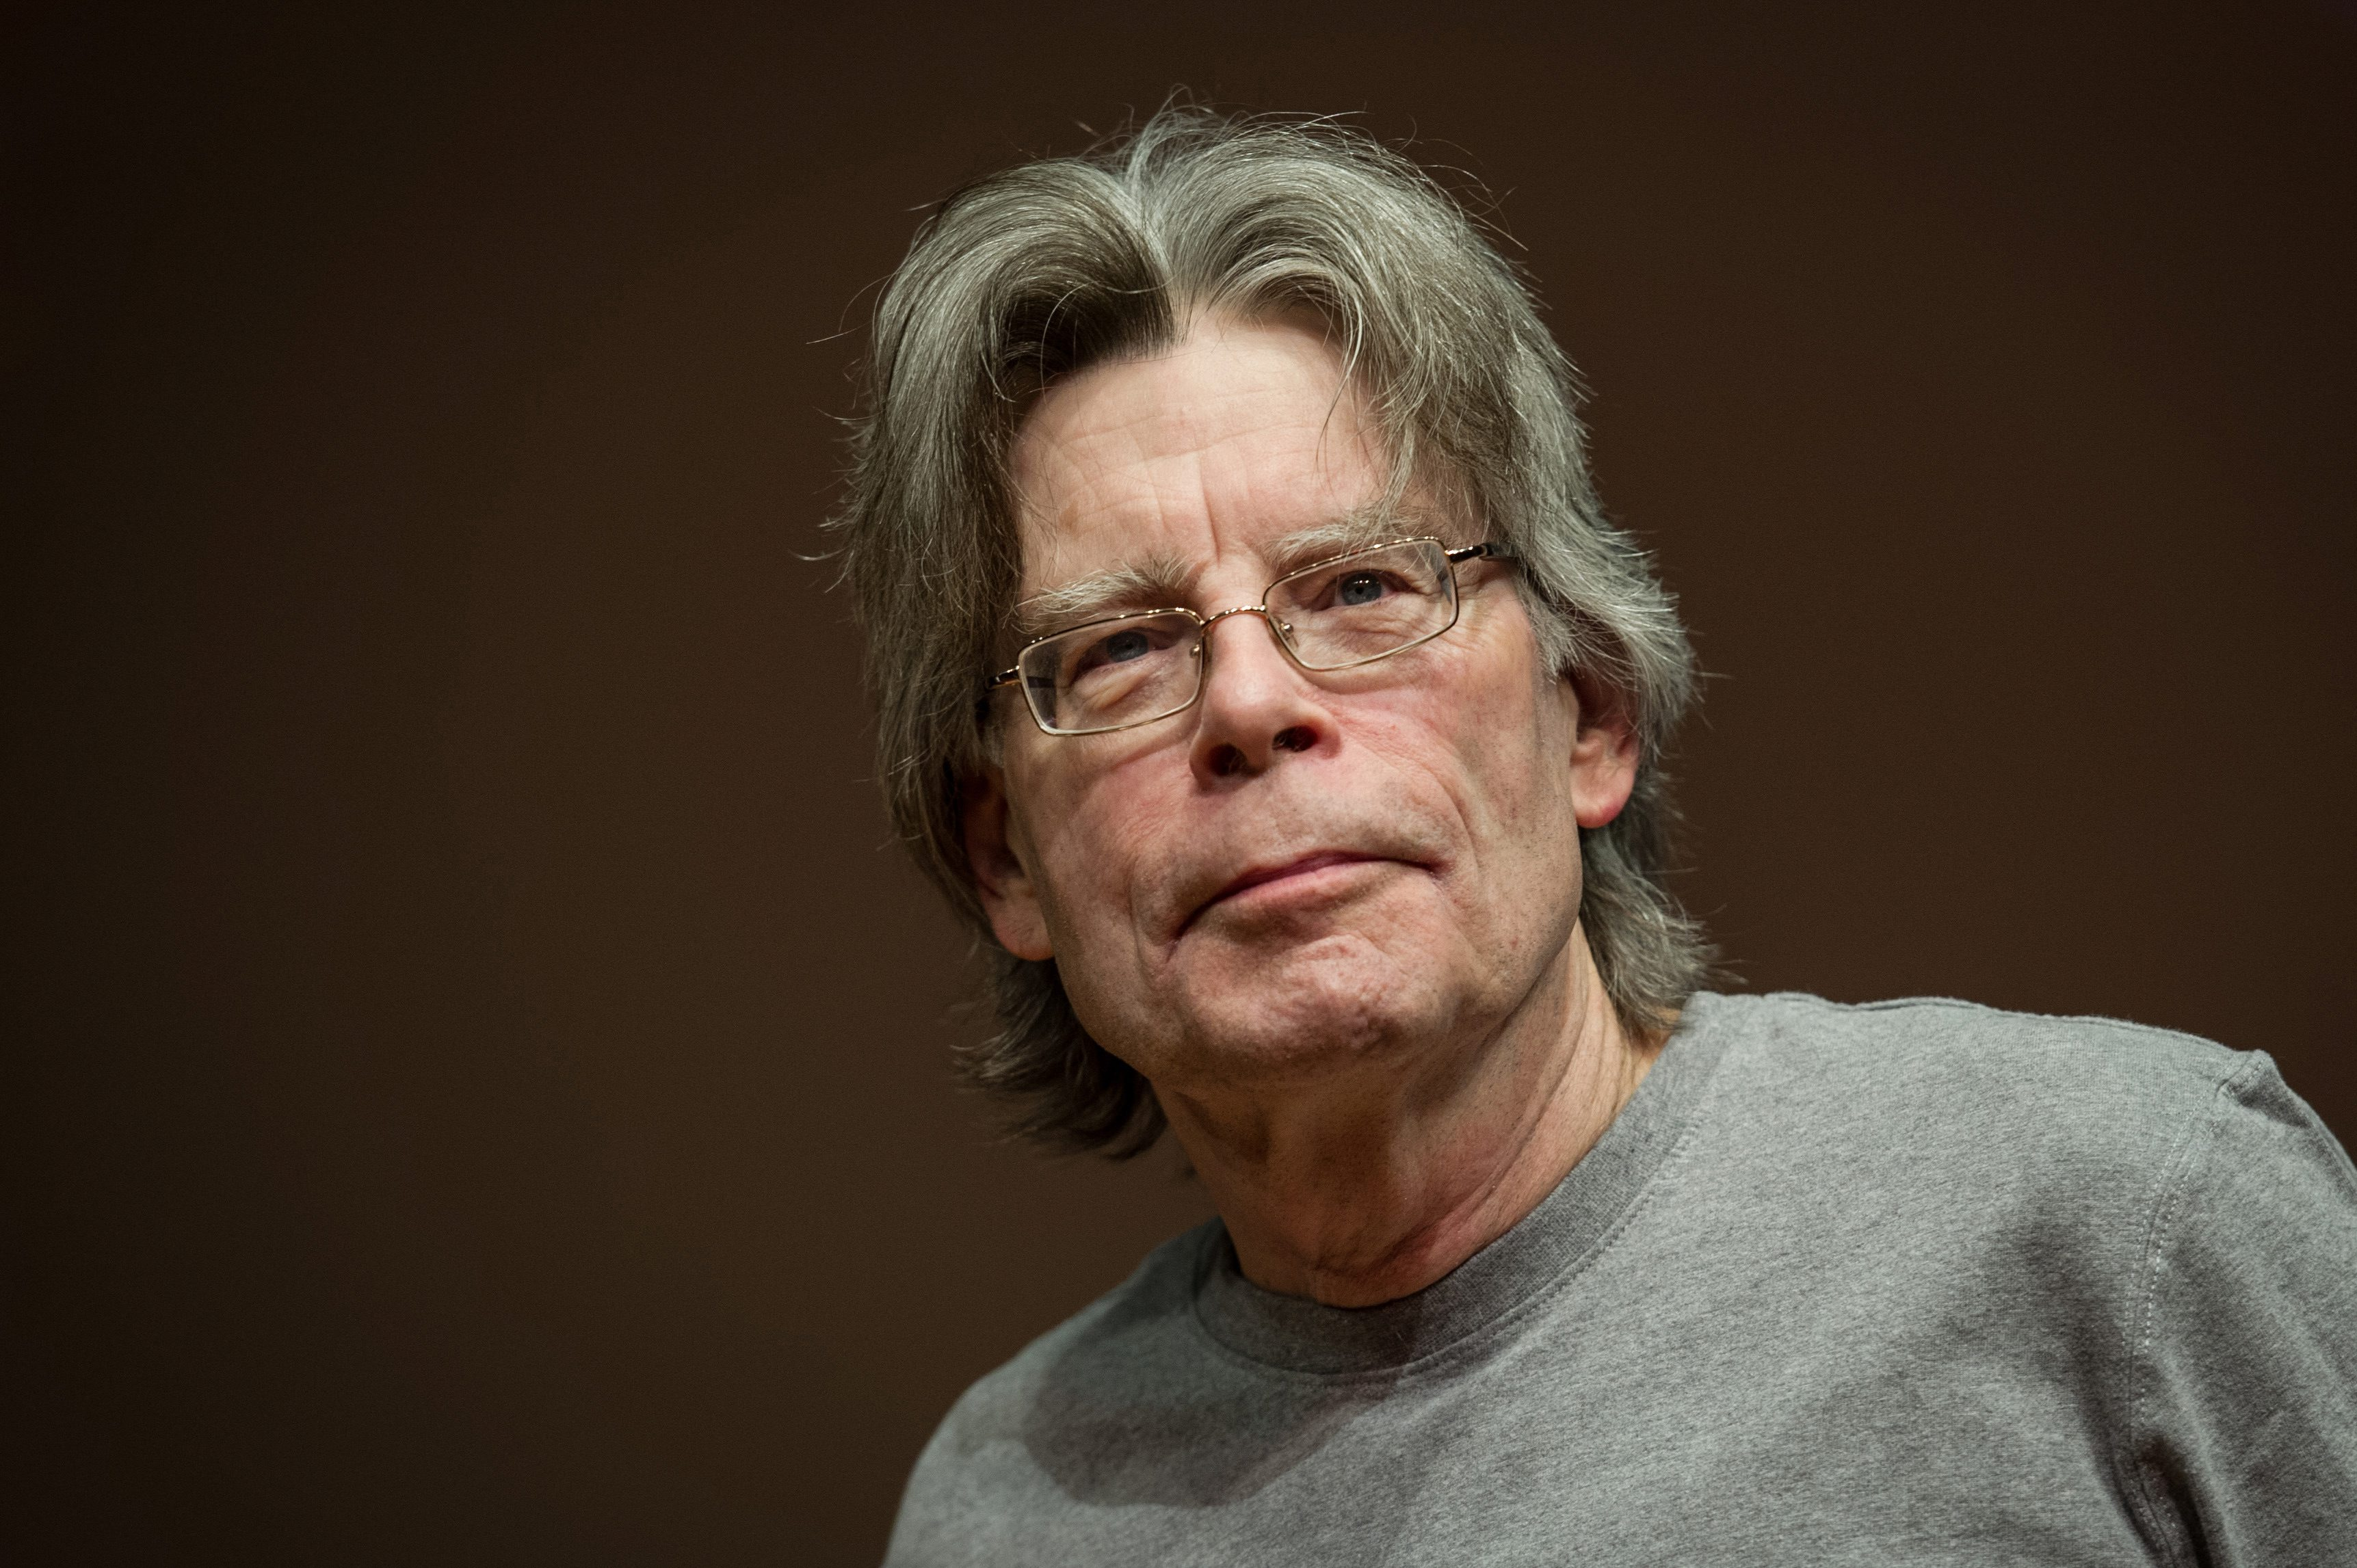 Stephen King Exclusive: Read an Excerpt From New Book 'Revival'